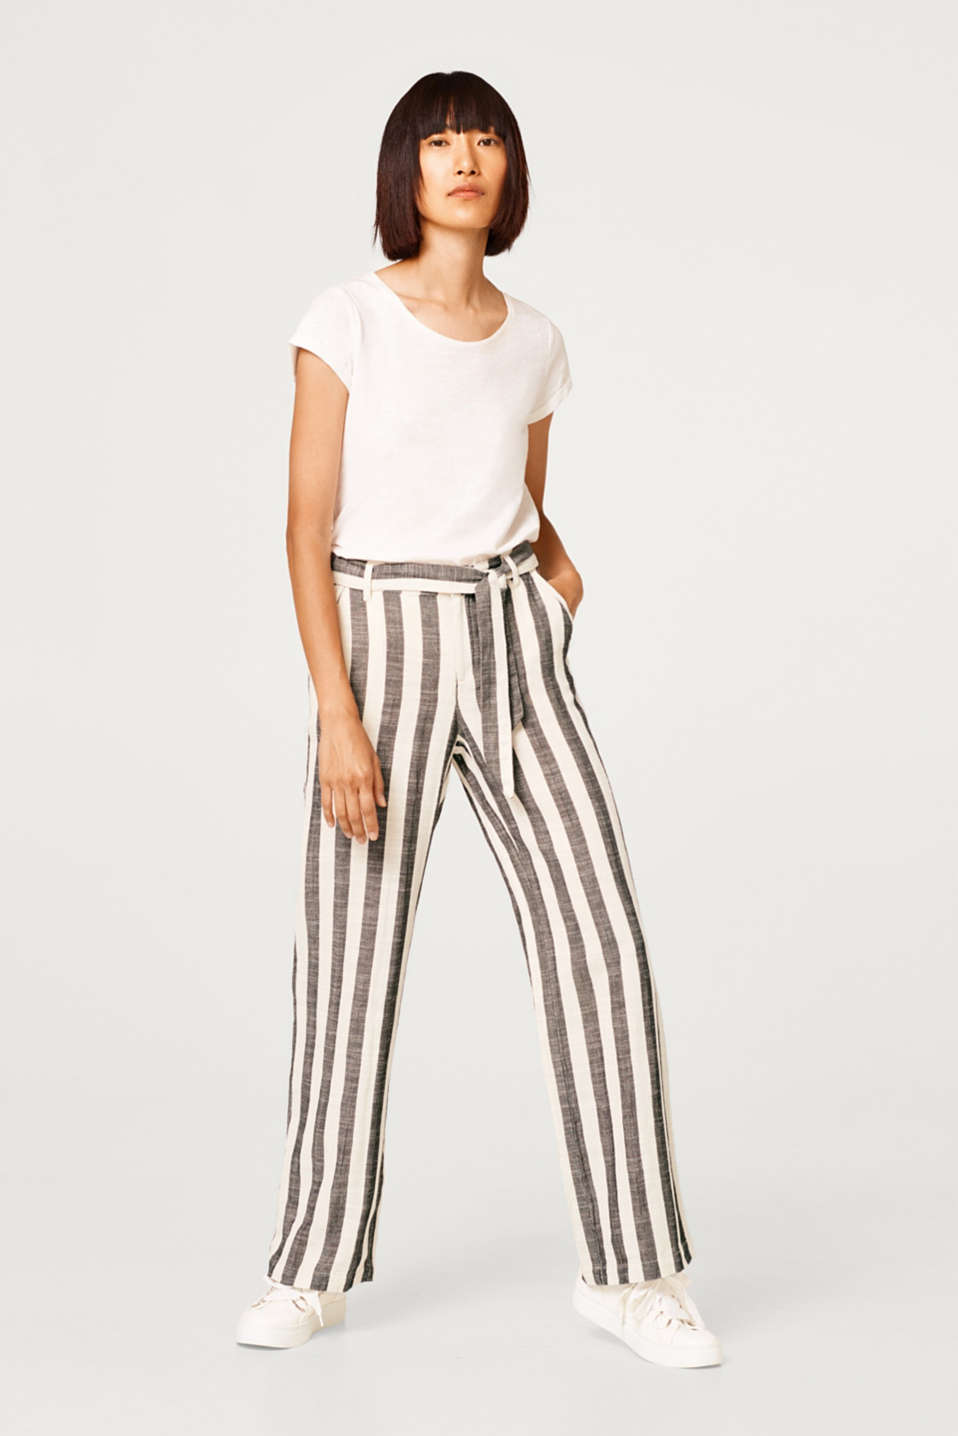 Esprit - With linen: casual striped trousers